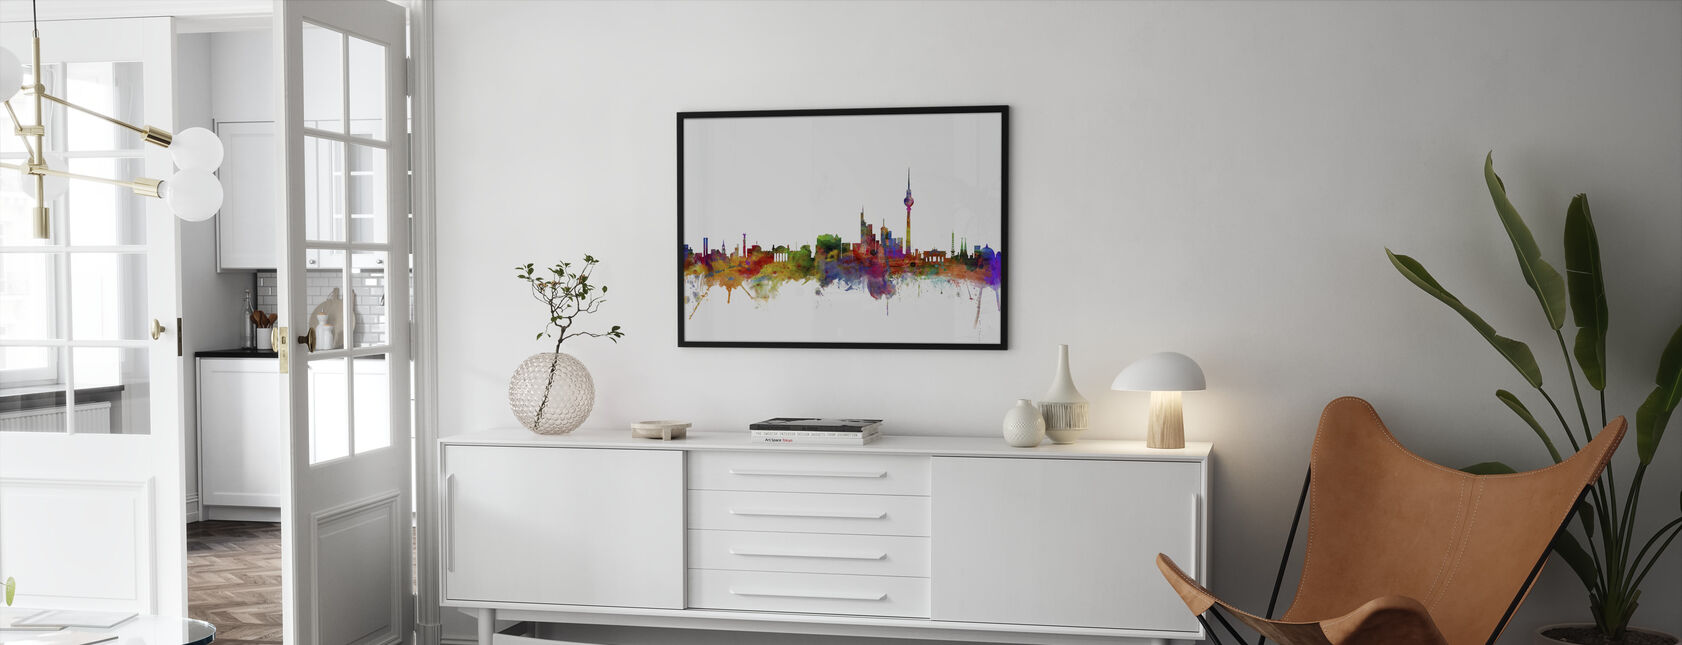 Berlin Skyline - Framed print - Living Room